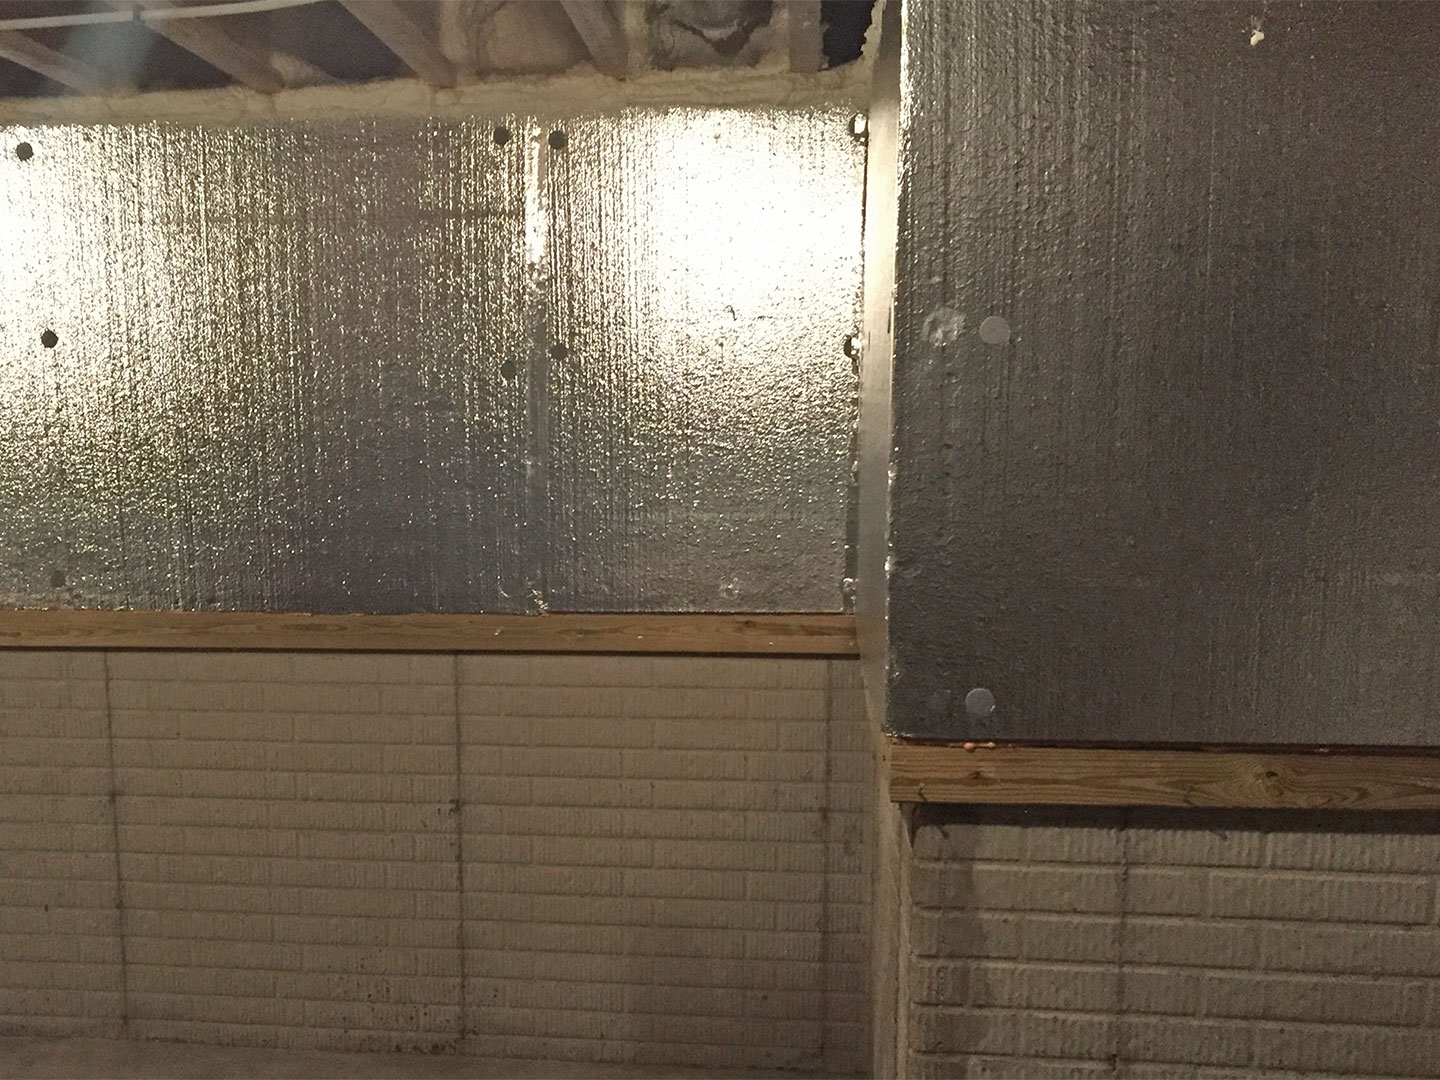 After the foam insulation was installed, above the rim joist was then air sealed and insulated with spray foam.